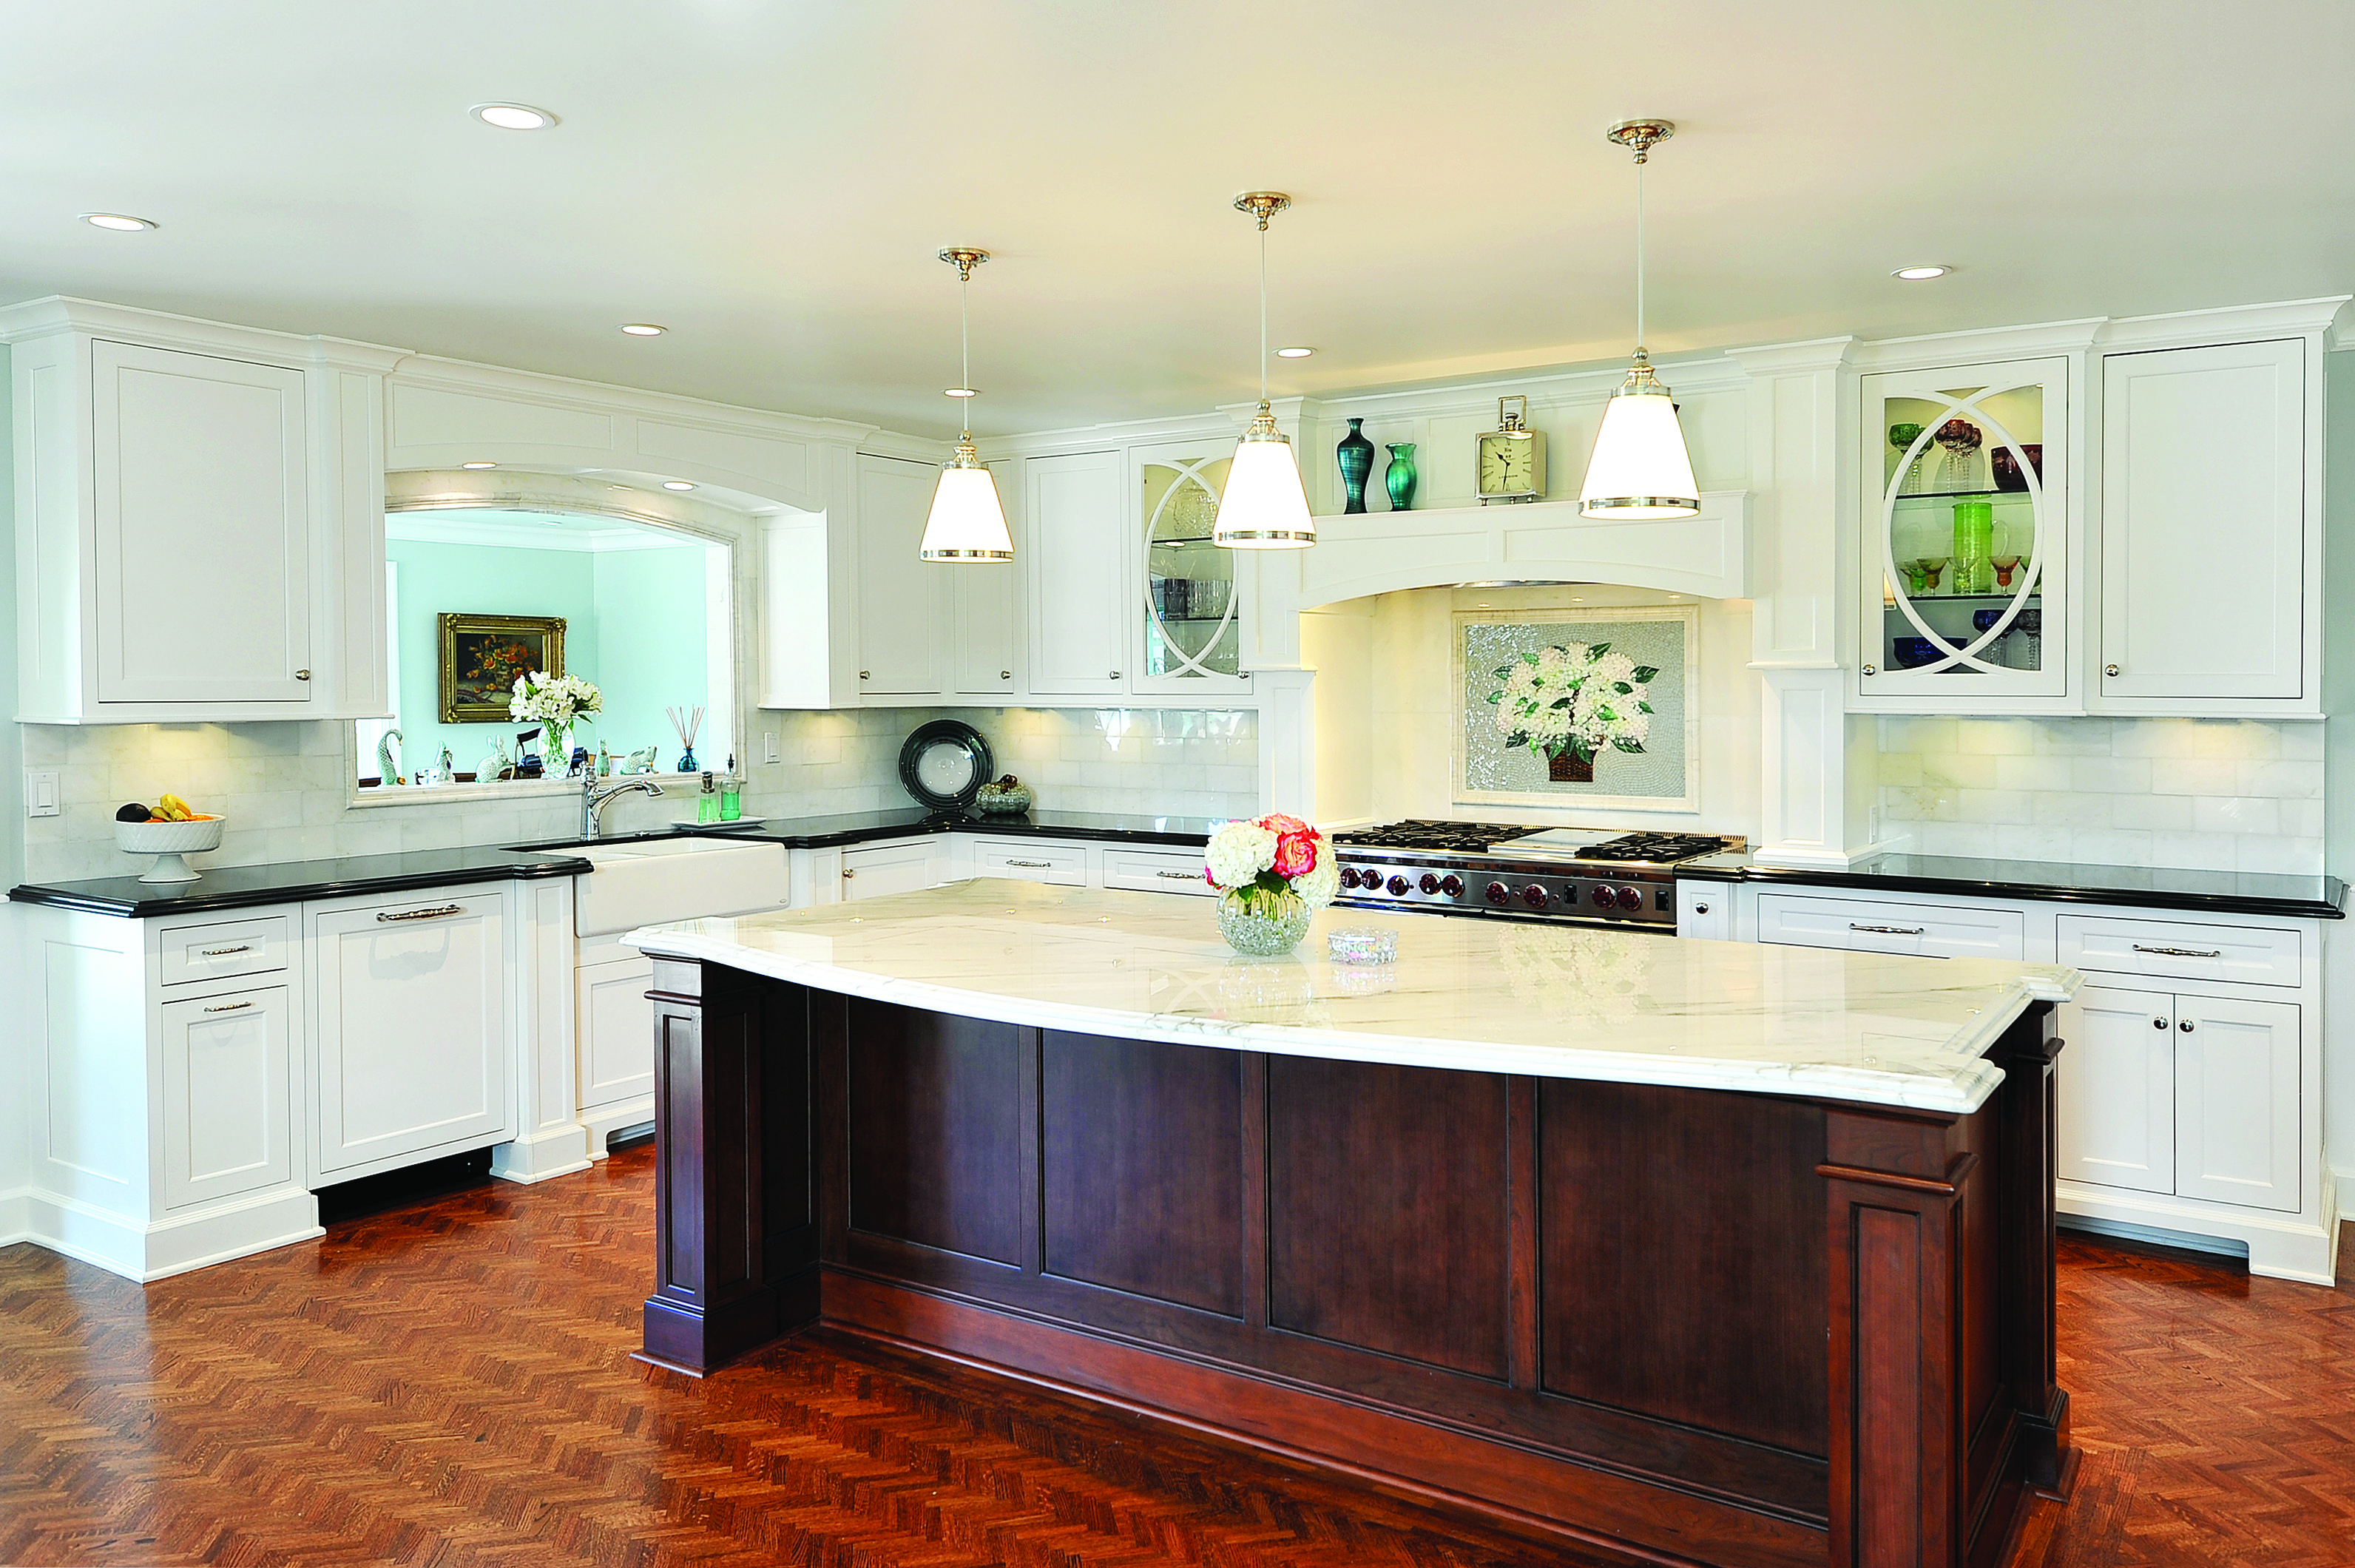 Woodland Cabinetry - Sutton - Maple - White | Kitchen and ...